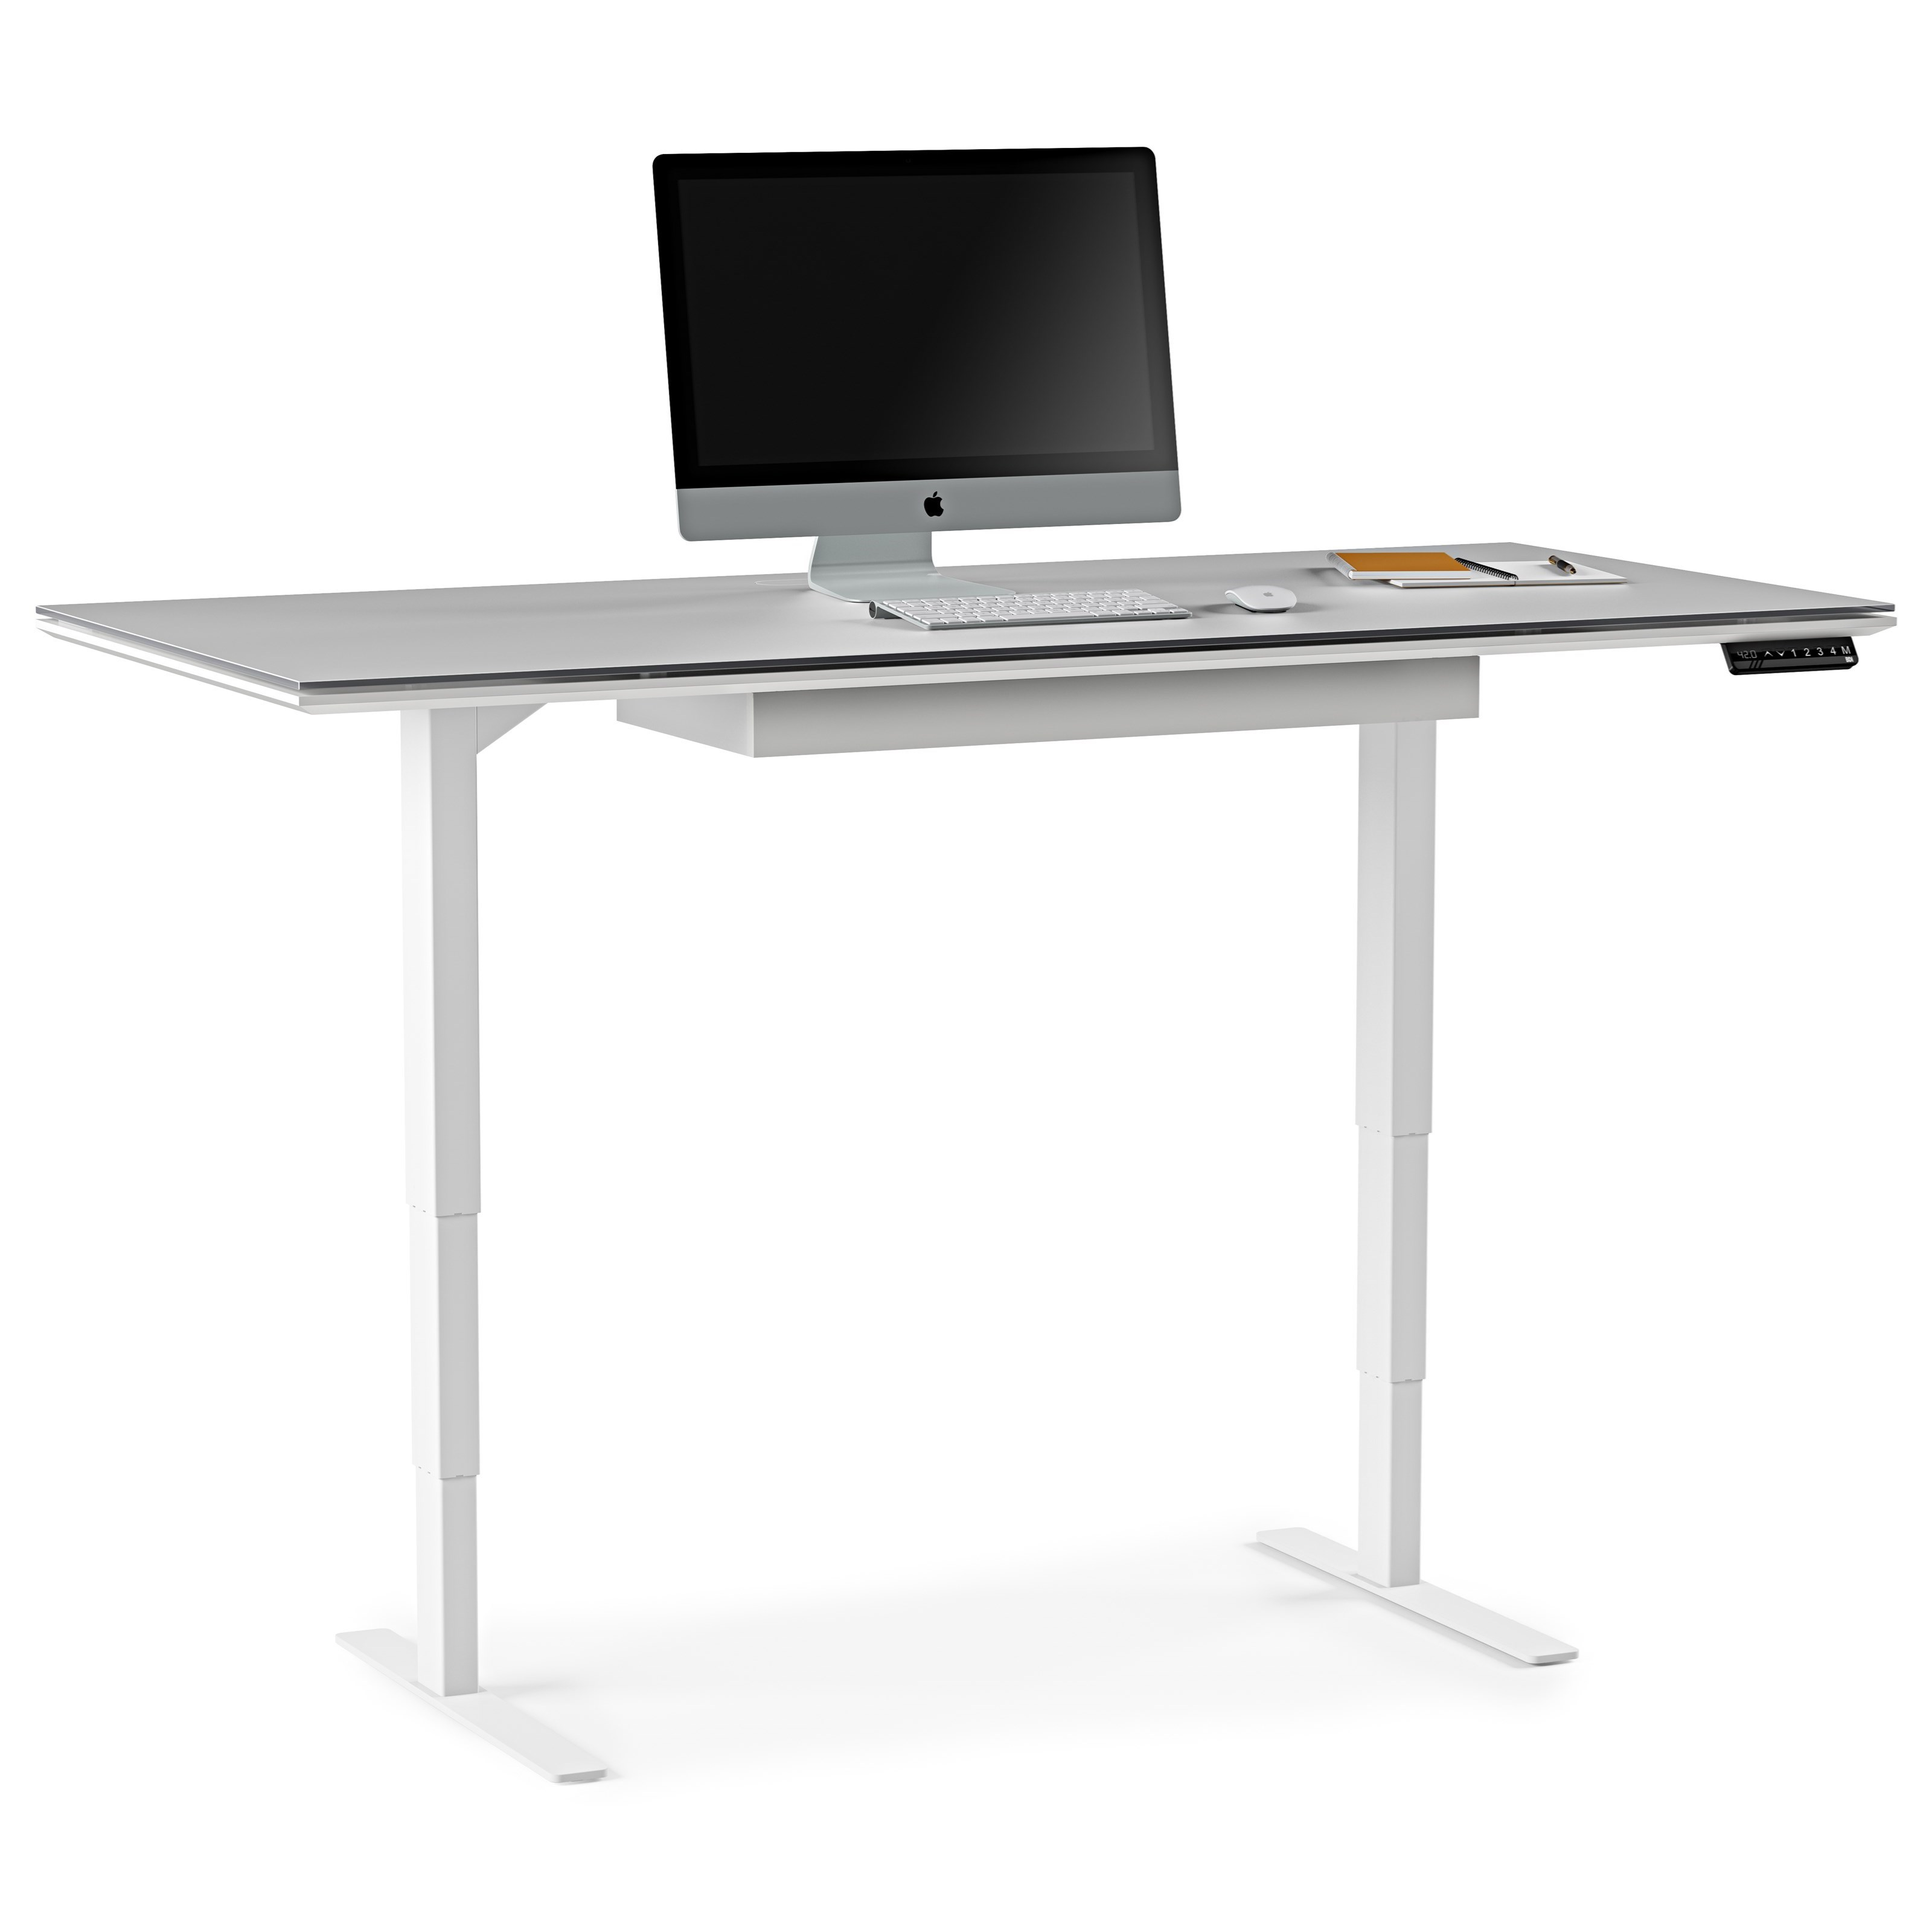 Centro Lift Standing Desk with Storage Drawer by BDI at Upper Room Home Furnishings